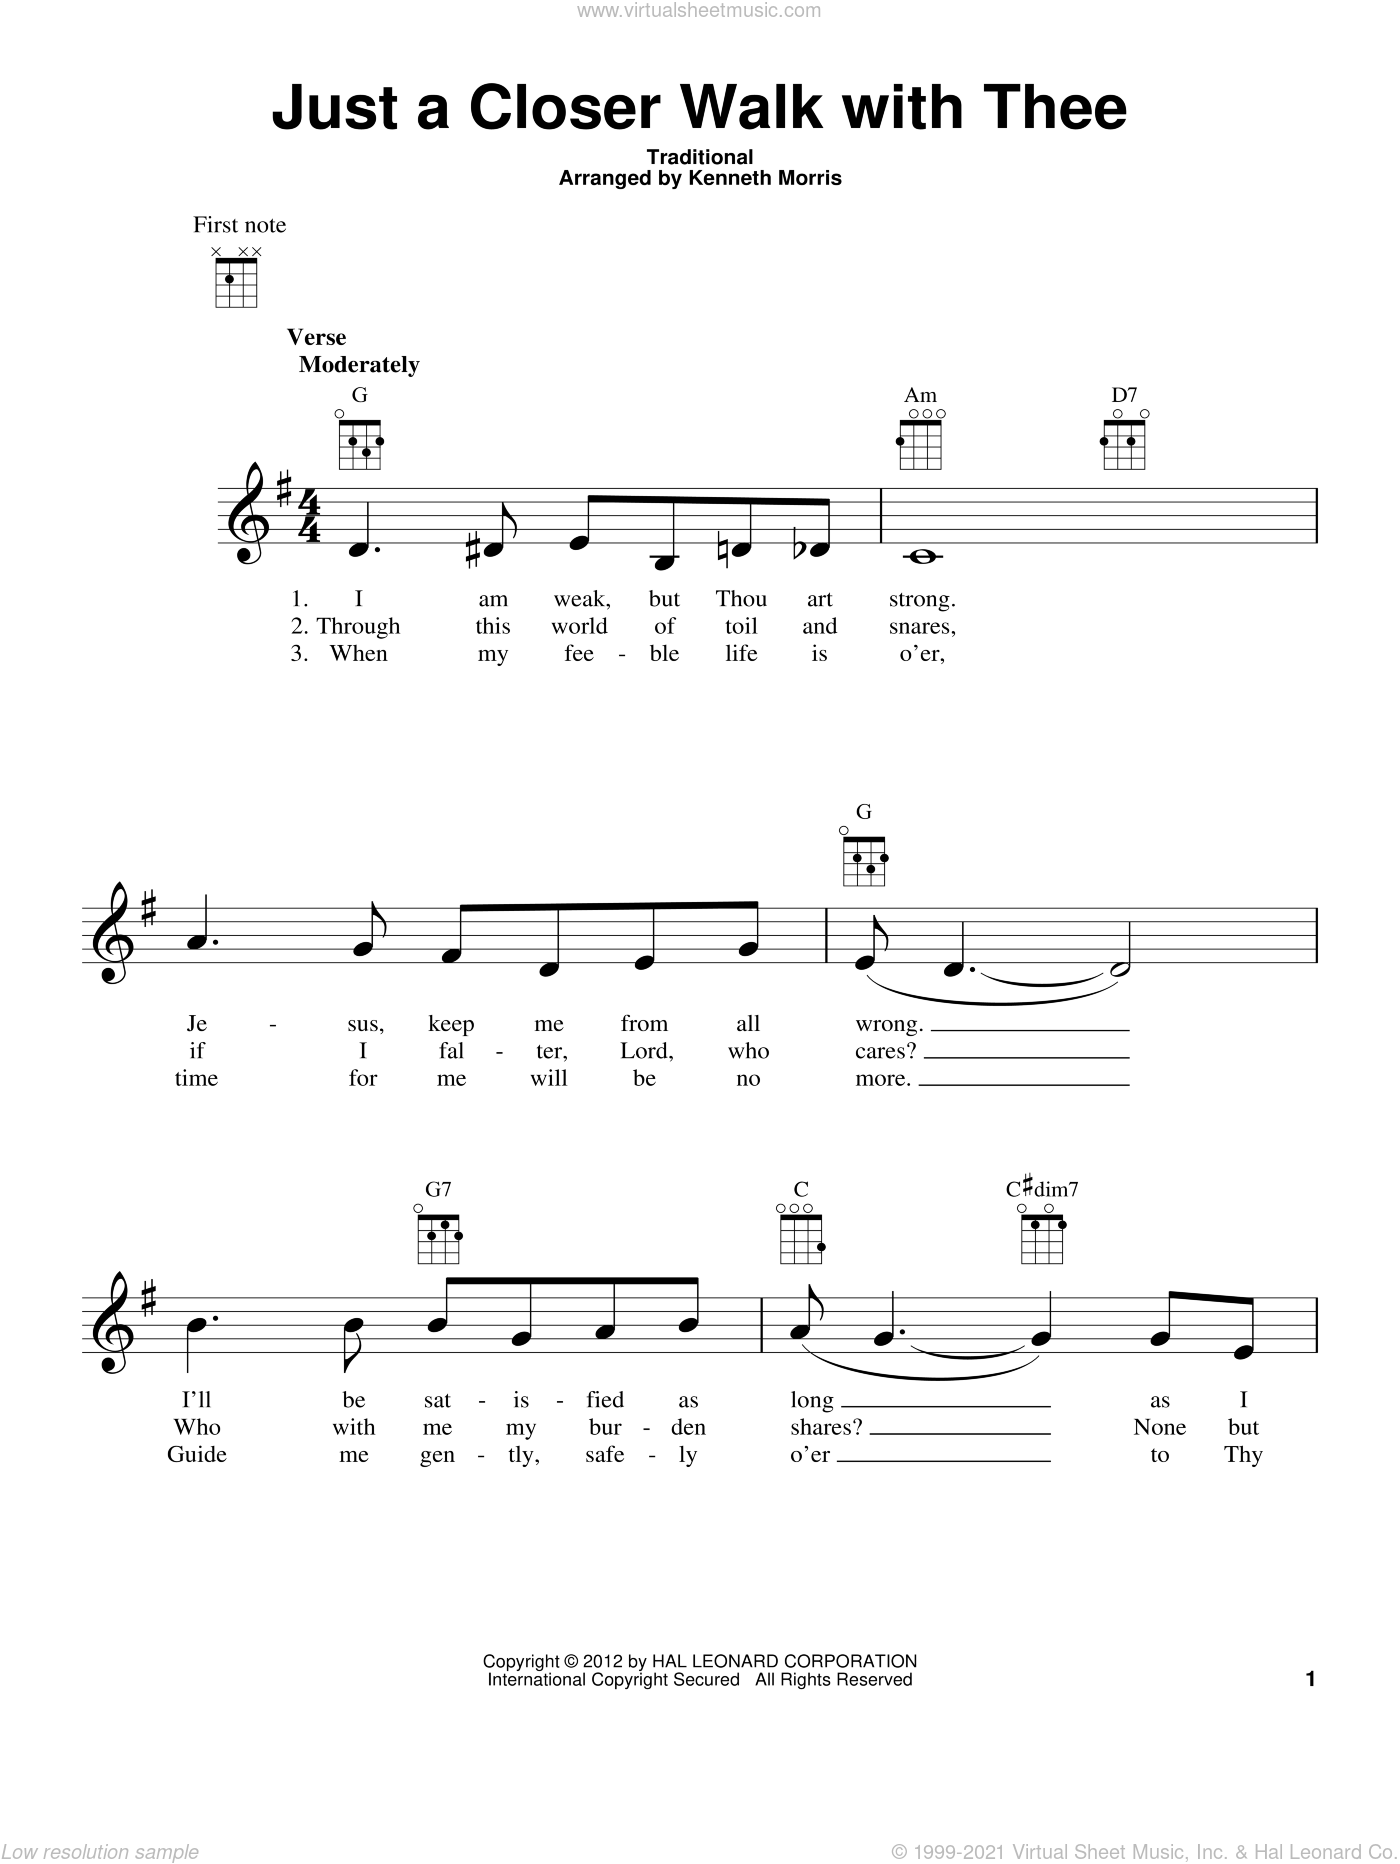 Just A Closer Walk With Thee sheet music for ukulele  and Kenneth Morris, intermediate